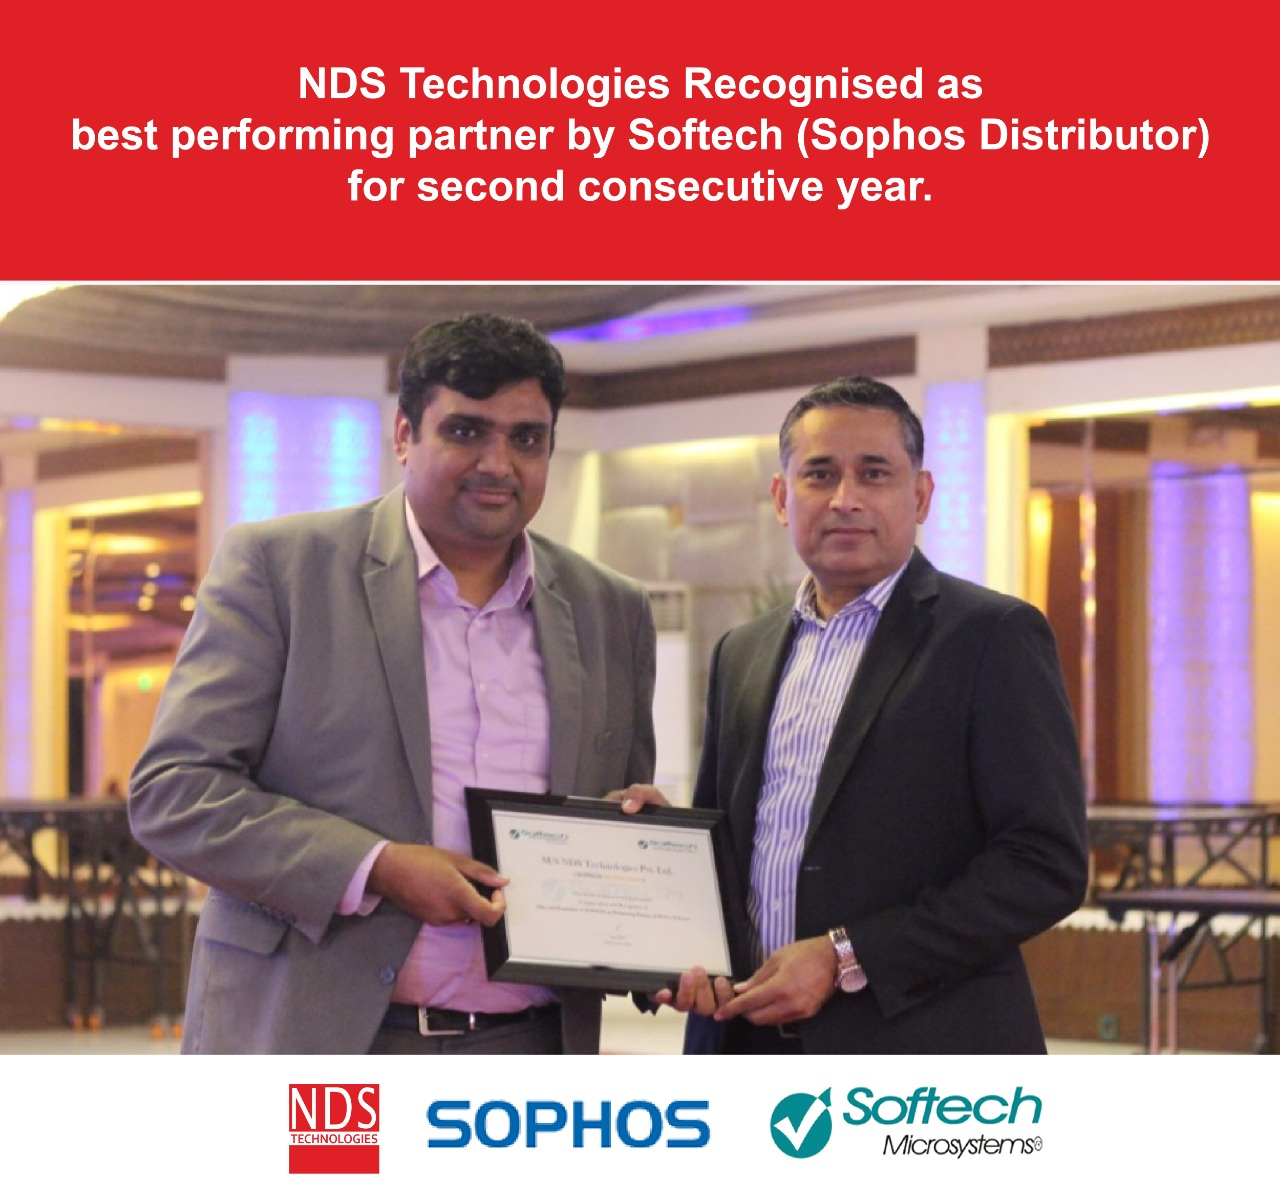 NDS Technologies Recognised as best performing partner by Softech (Sophos Distributor)